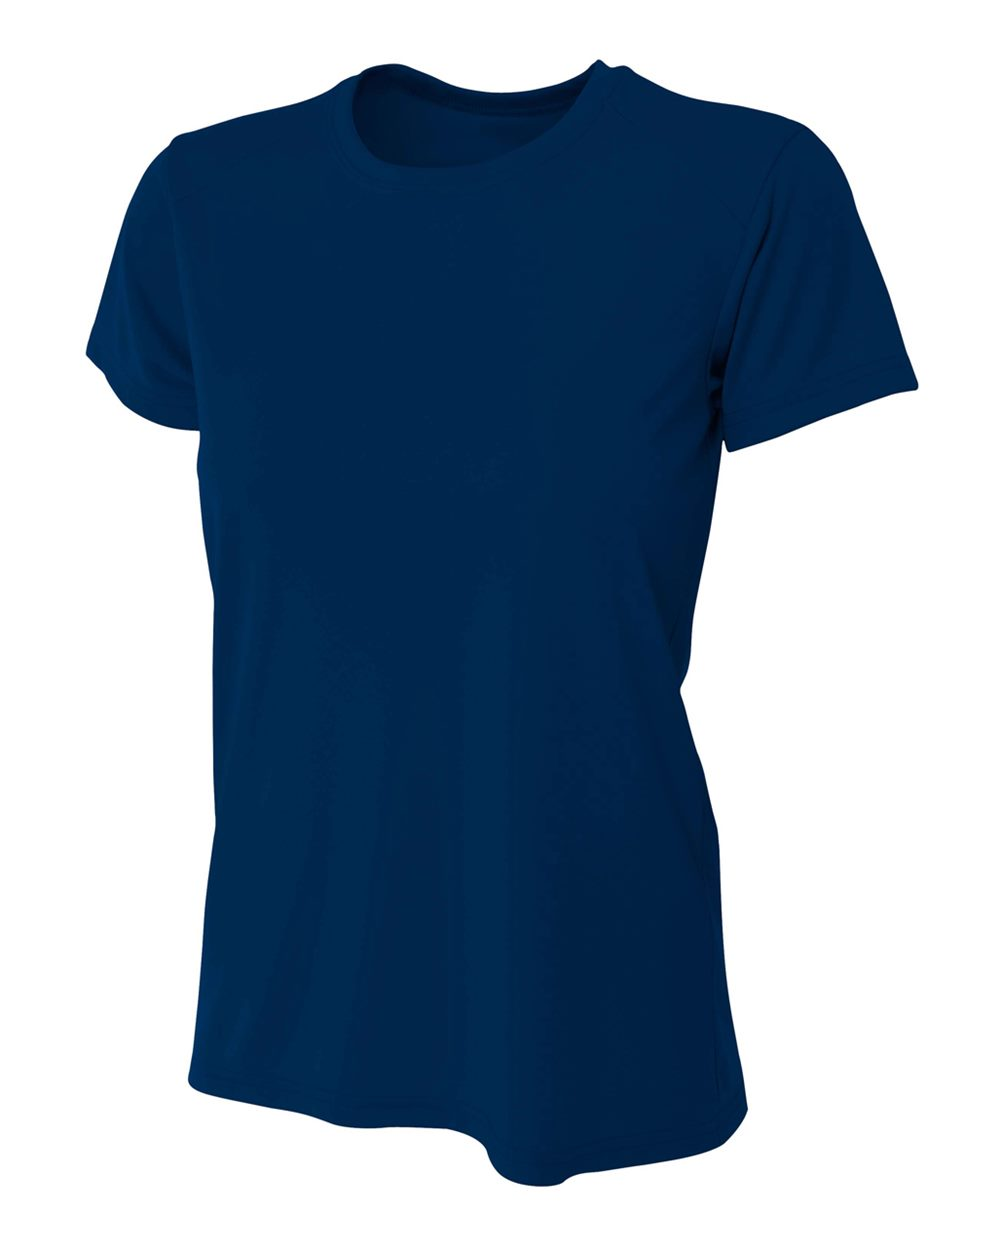 womens-polo-mwicking-navy-blue.jpg